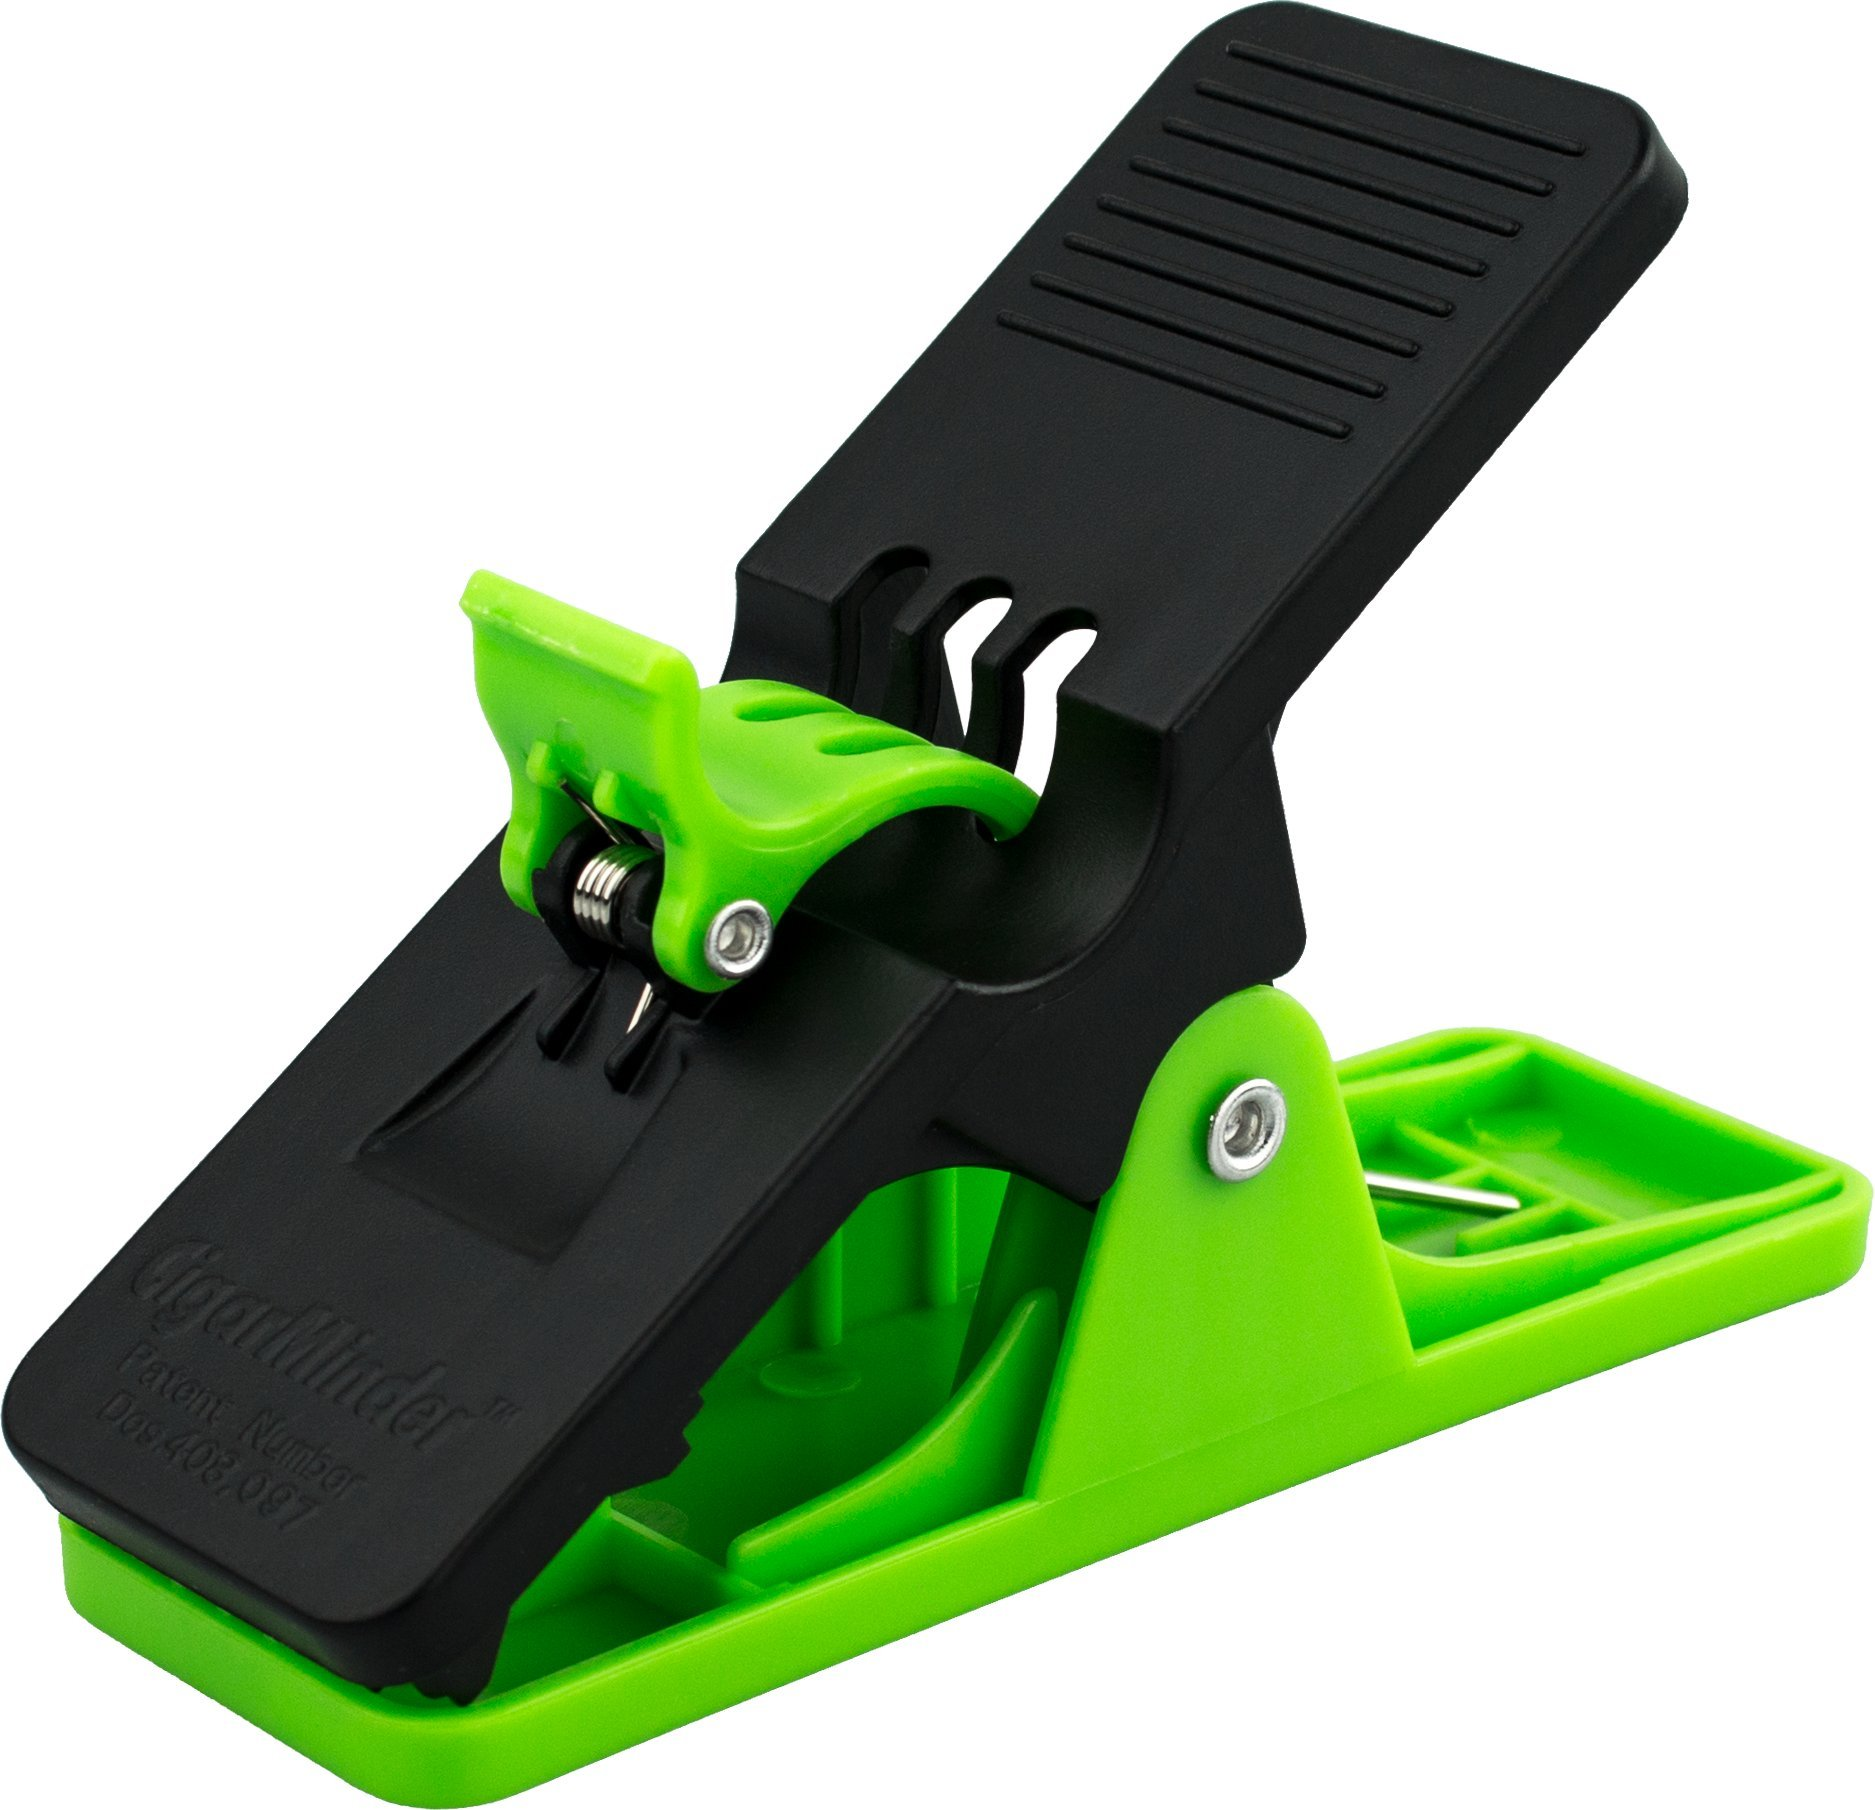 Cigar Minder Clip, All Purpose Cigar Holder with Light Pressure Spring, Holds Most Sizes of Cigars, Green